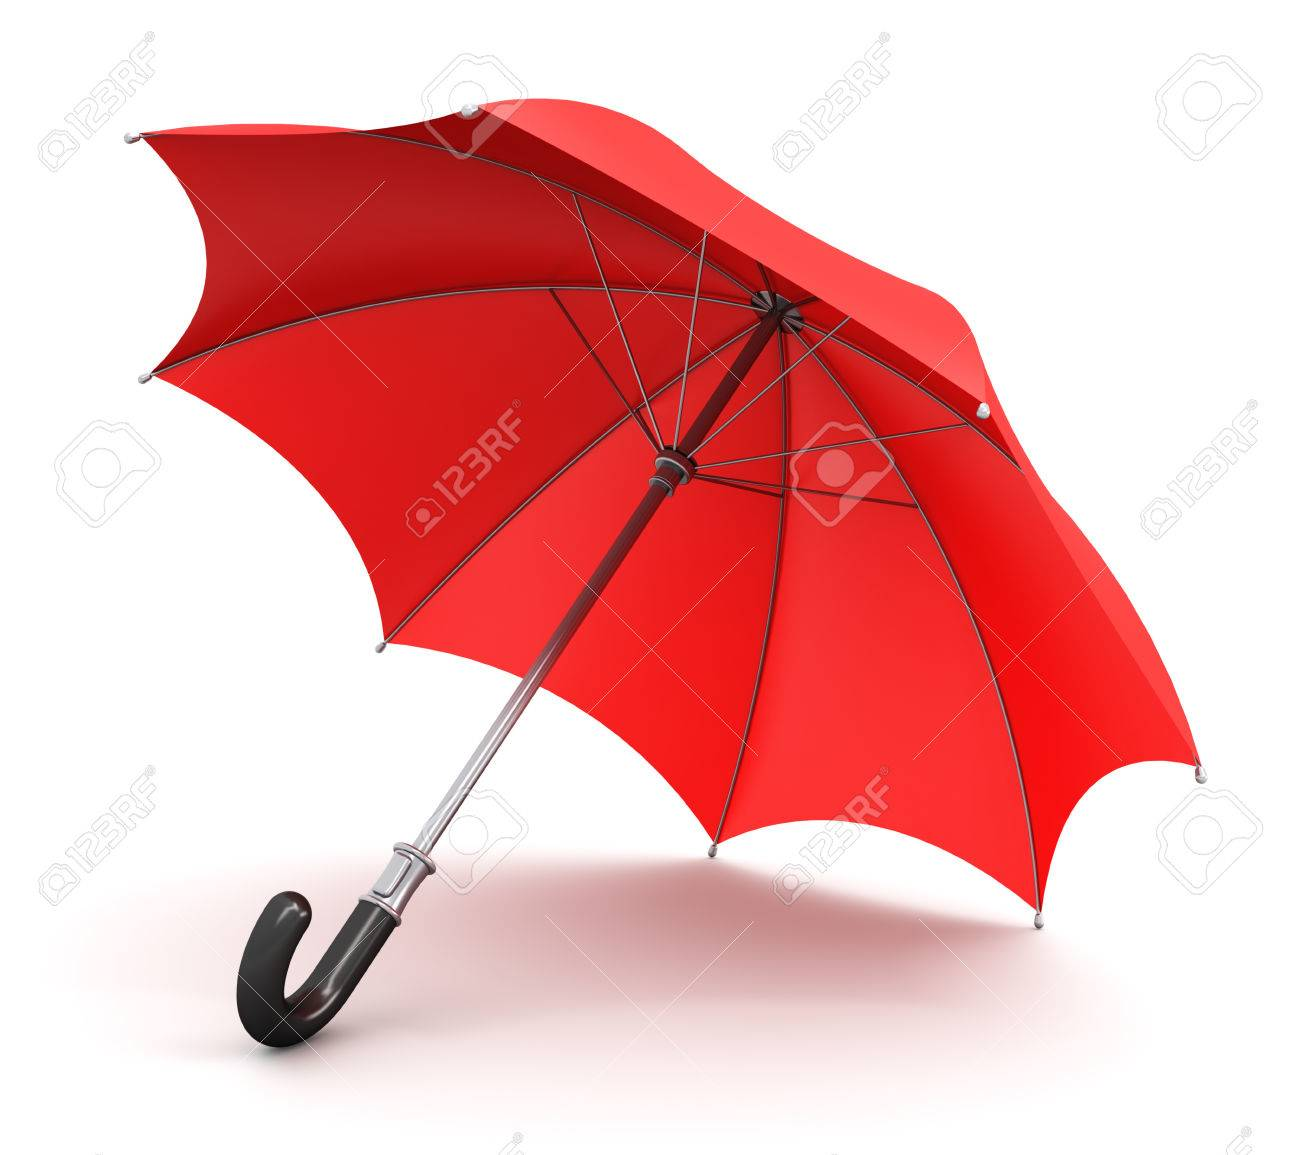 Red Umbrella Or Parasol With Black Handle Isolated On White